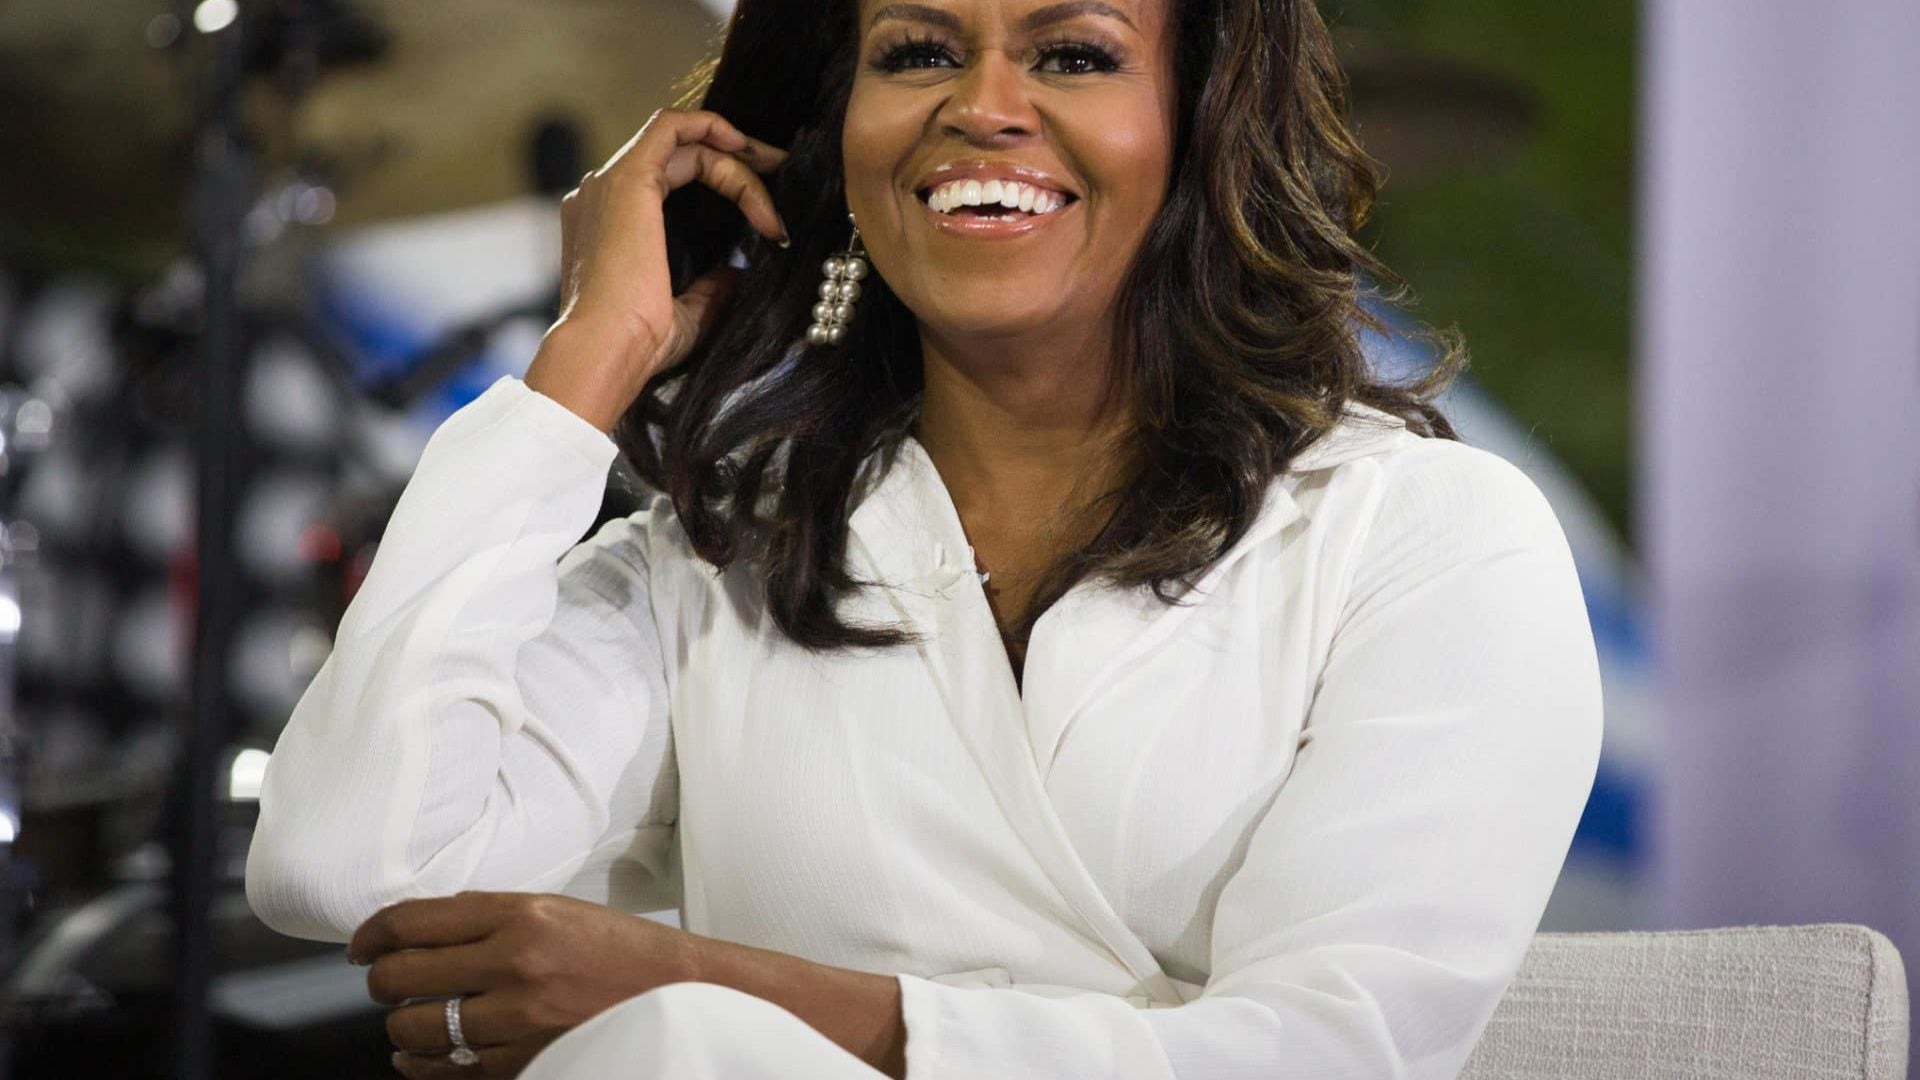 In 2008, Michelle Obama Wasn't Sure America Was 'Ready' For A Black President